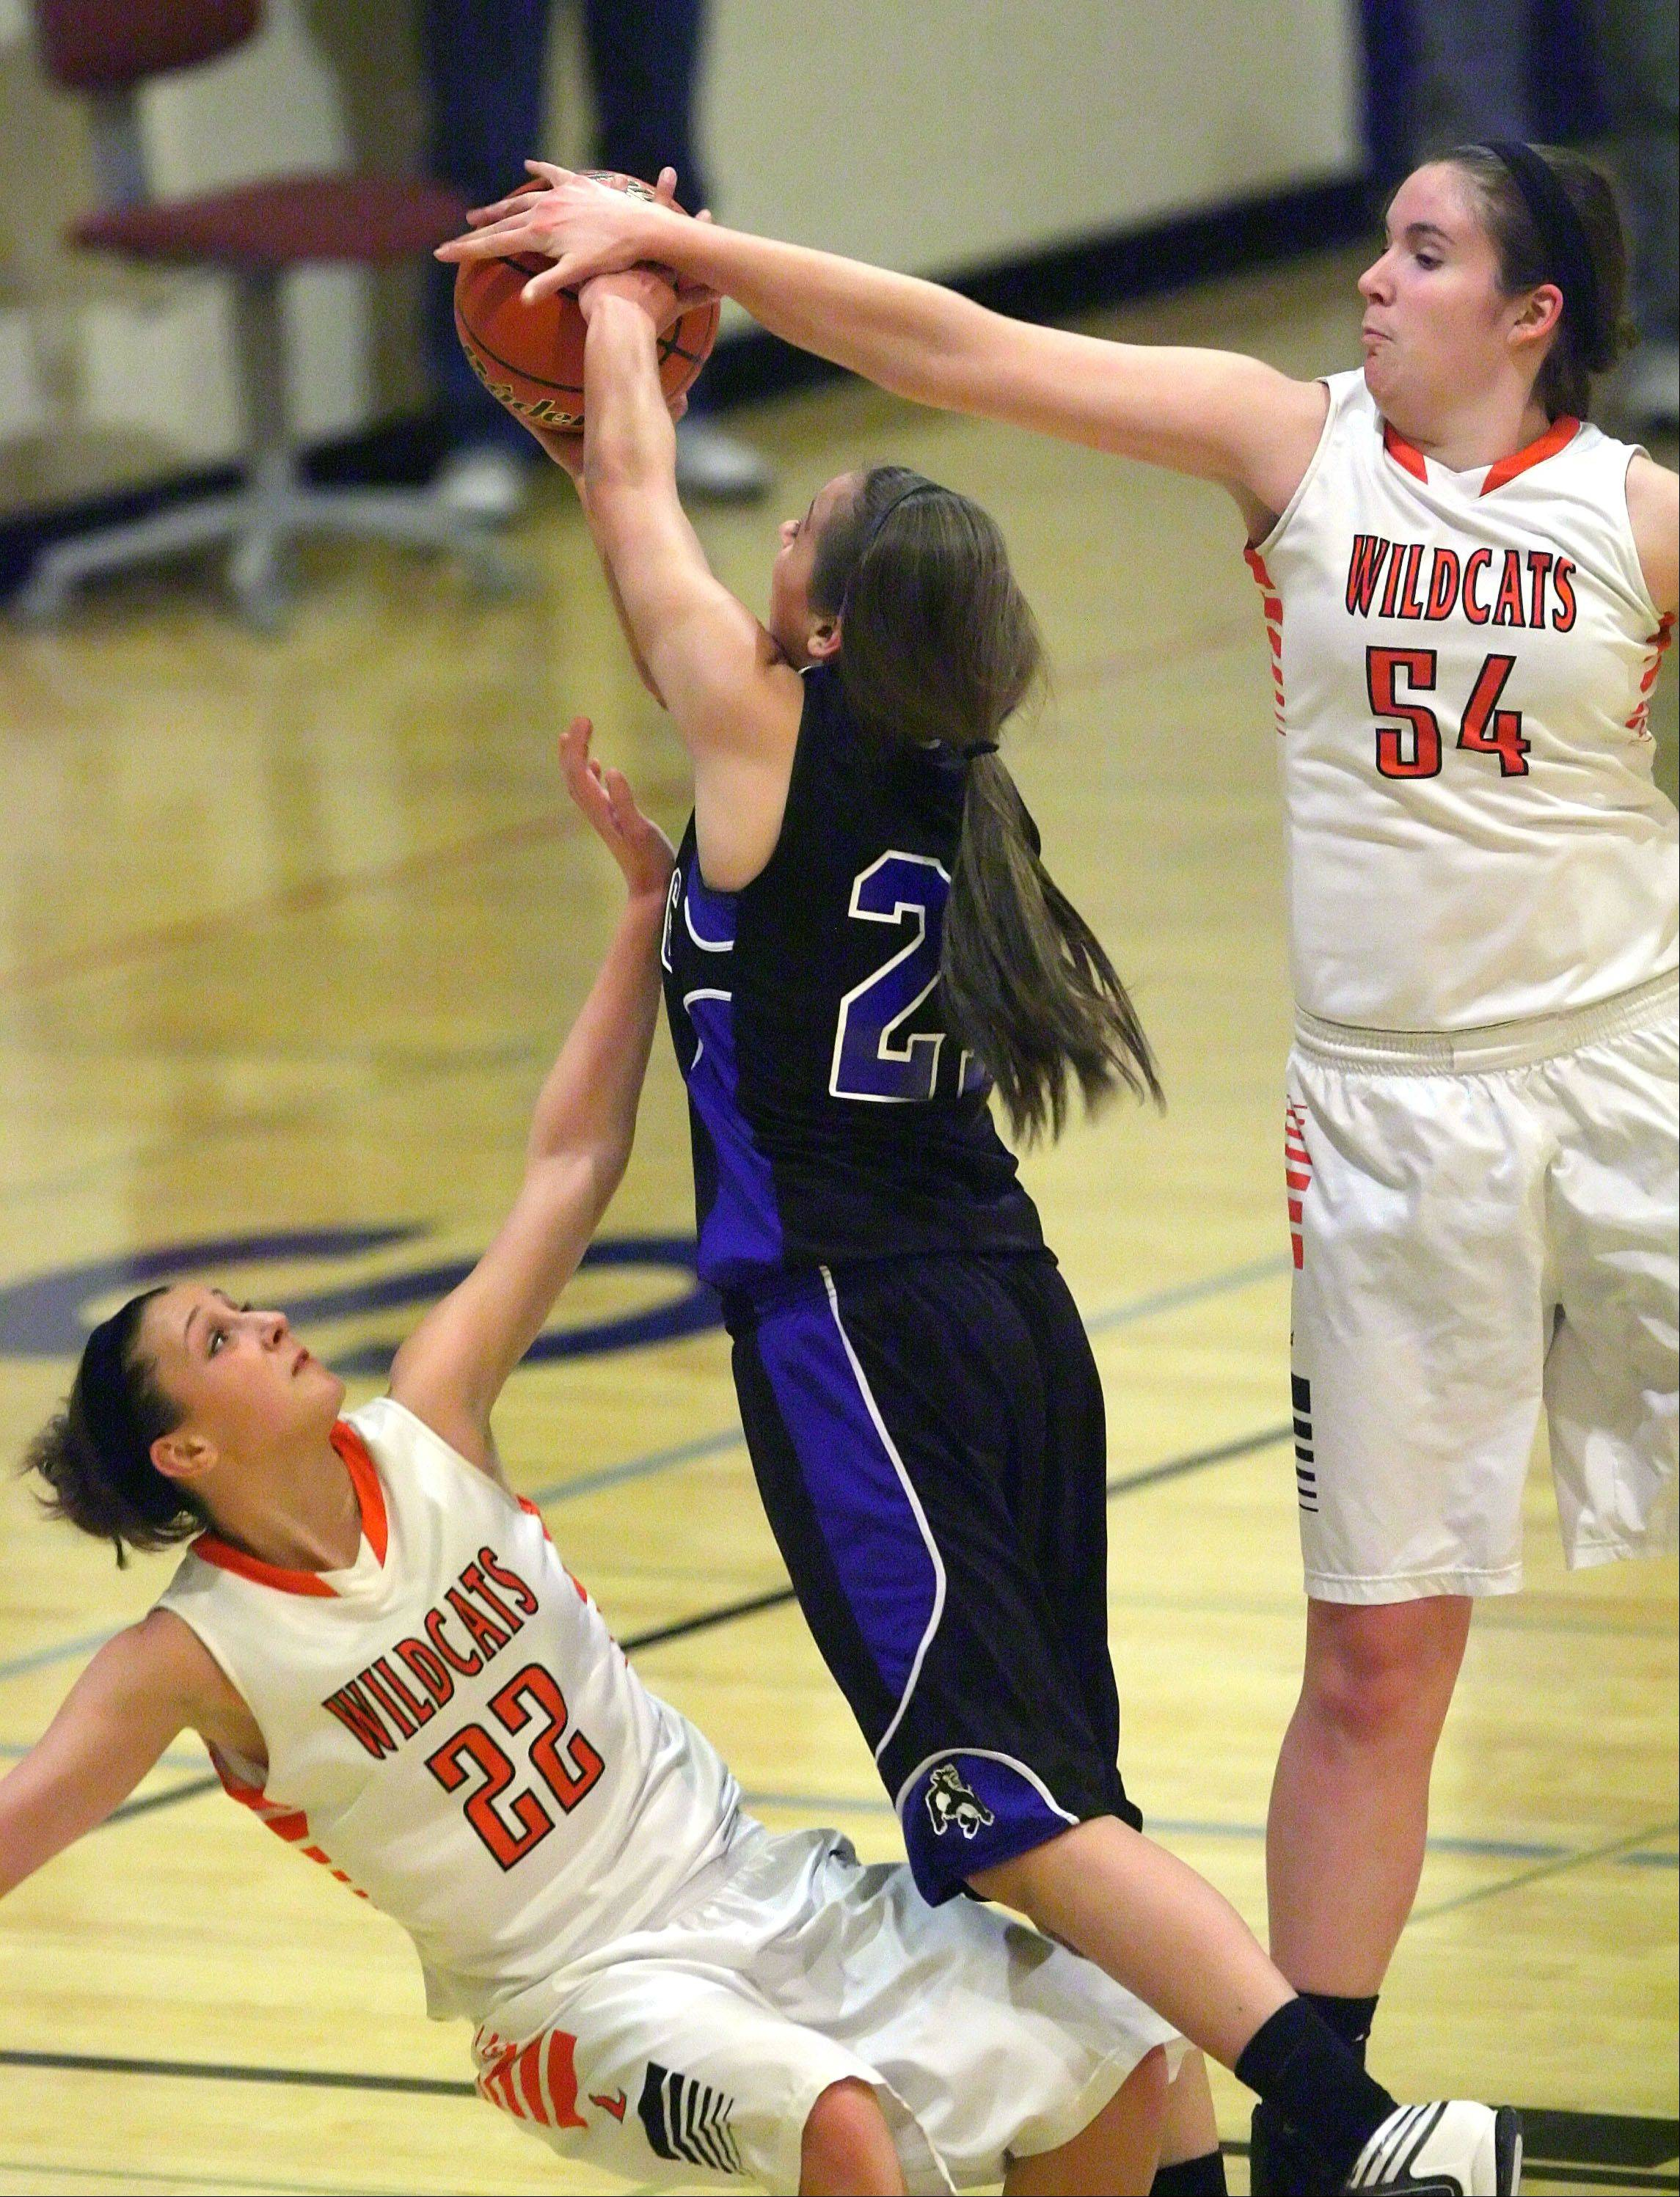 Wheeling's Deanna Kuzmanic drives in between Libertyville's Olivia Mayer, left, and Becky Deichl during the Class 4A girls basketball regional play-in game Monday night at Wheeling.